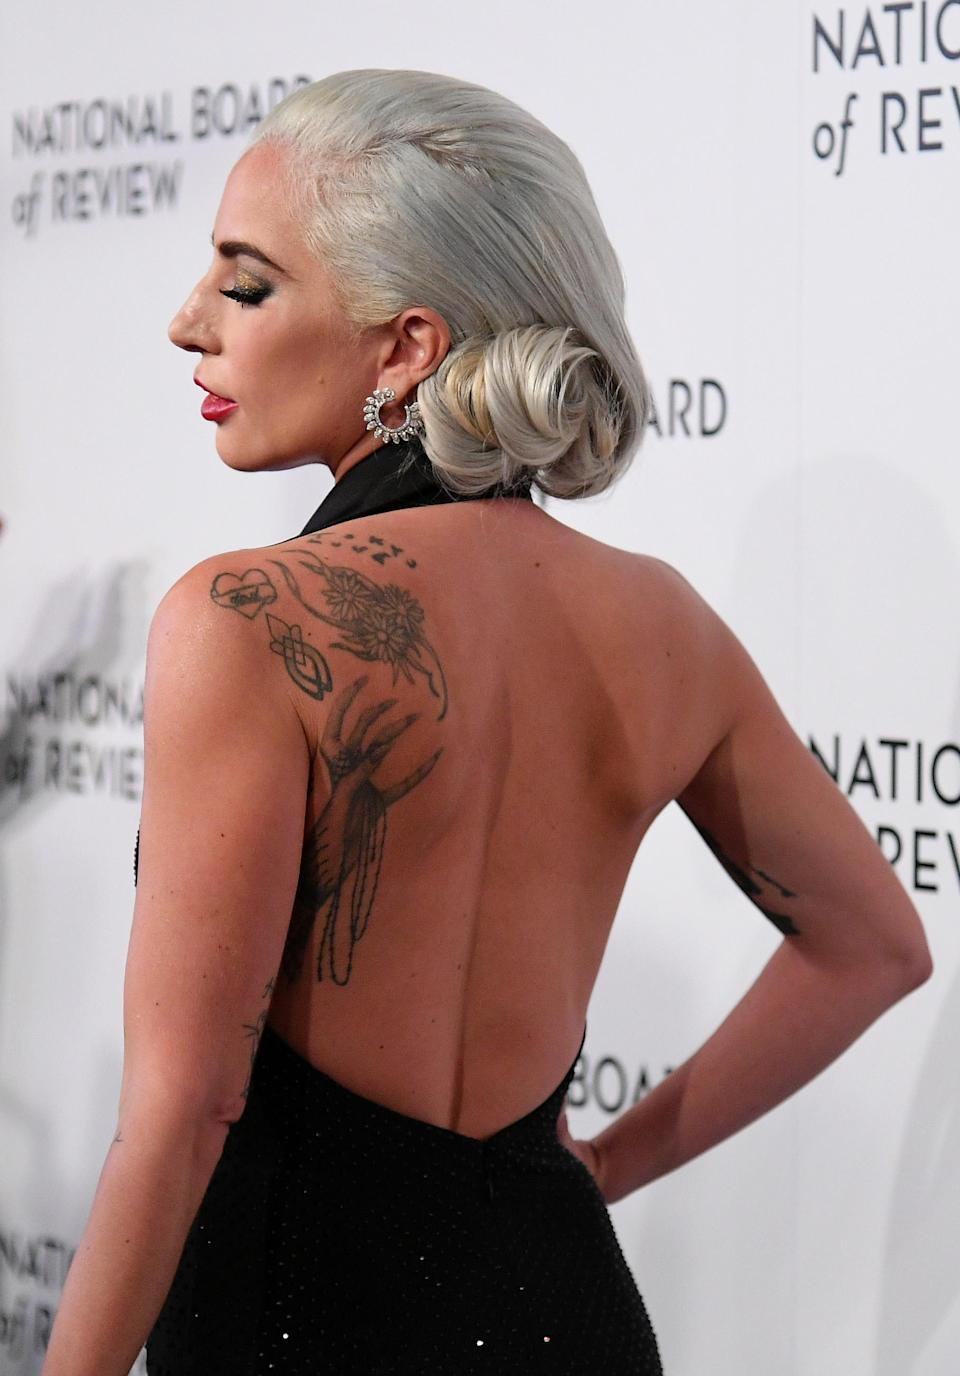 """<p>Lady Gaga's back is adorned in tattoos with a daisy chain and monster claw (in tribute to her fans) sitting pretty. Interestingly, the singer only has ink on the left side of her body after her father <a href=""""https://www.eonline.com/uk/news/585294/lady-gaga-gets-huge-monster-paw-tattoo-on-her-back-flashes-naked-butt-in-the-process-see-pics"""" rel=""""nofollow noopener"""" target=""""_blank"""" data-ylk=""""slk:asked"""" class=""""link rapid-noclick-resp"""">asked</a> her to """"keep one side slightly normal"""". <em>[Photo: Getty]</em> </p>"""